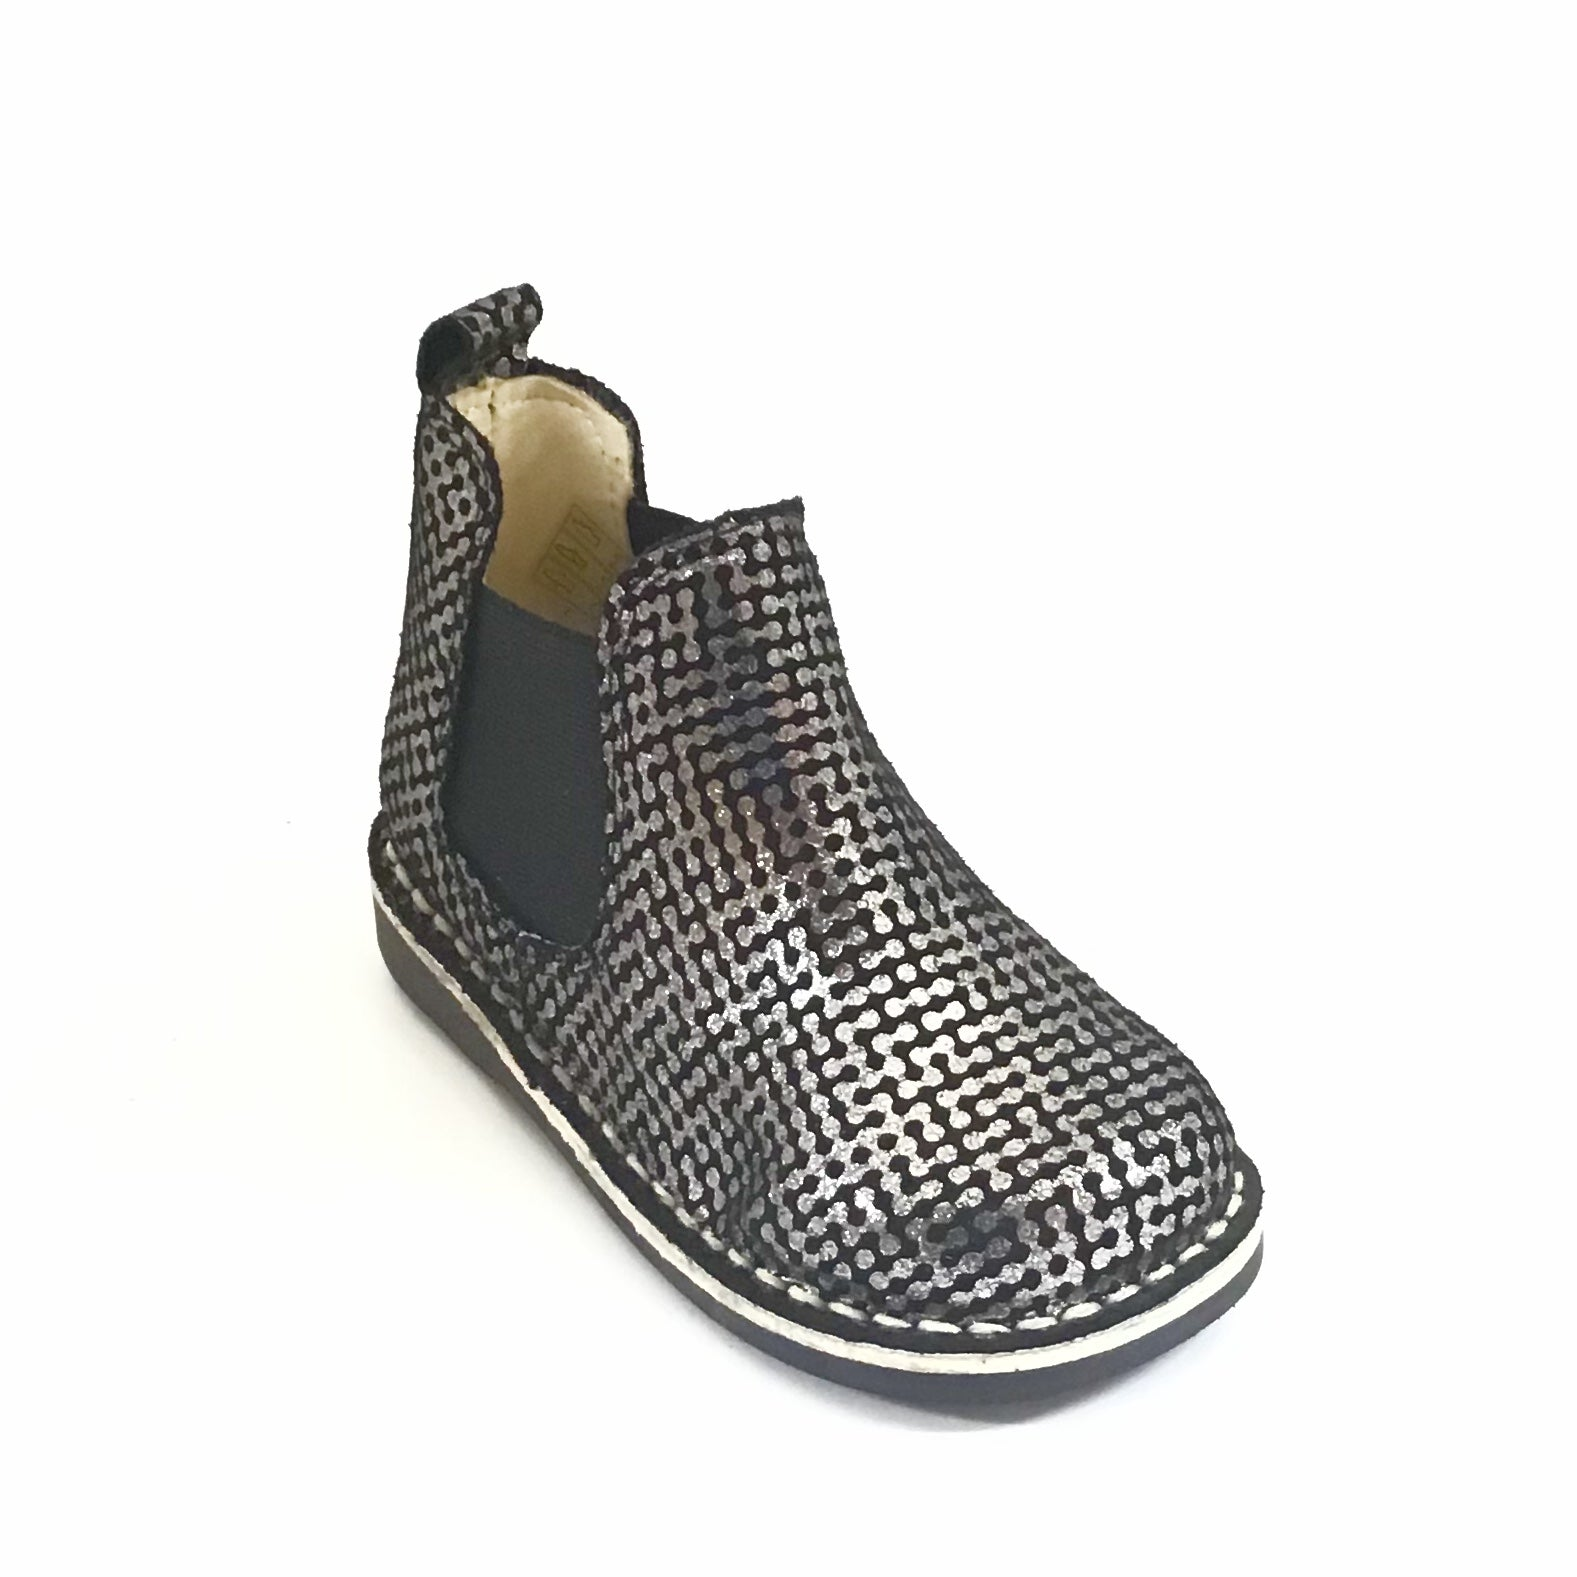 Sonatina Silver and Black Boot with Elastic